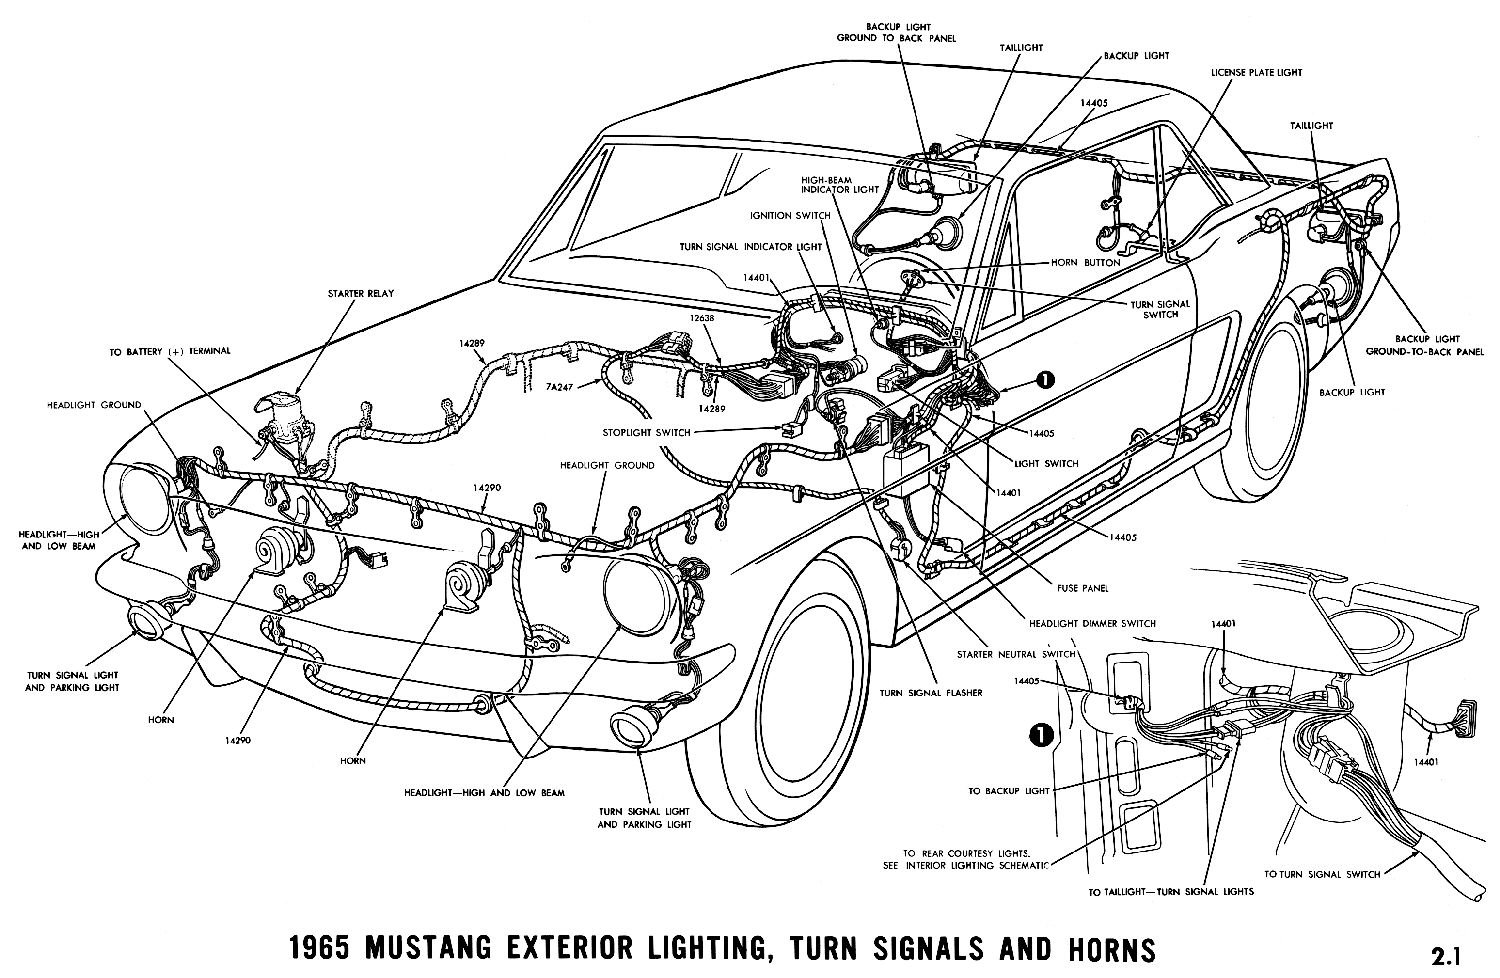 1966 mustang wiring harness painless 1966 image 66 mustang painless wiring harness wiring diagram and hernes on 1966 mustang wiring harness painless